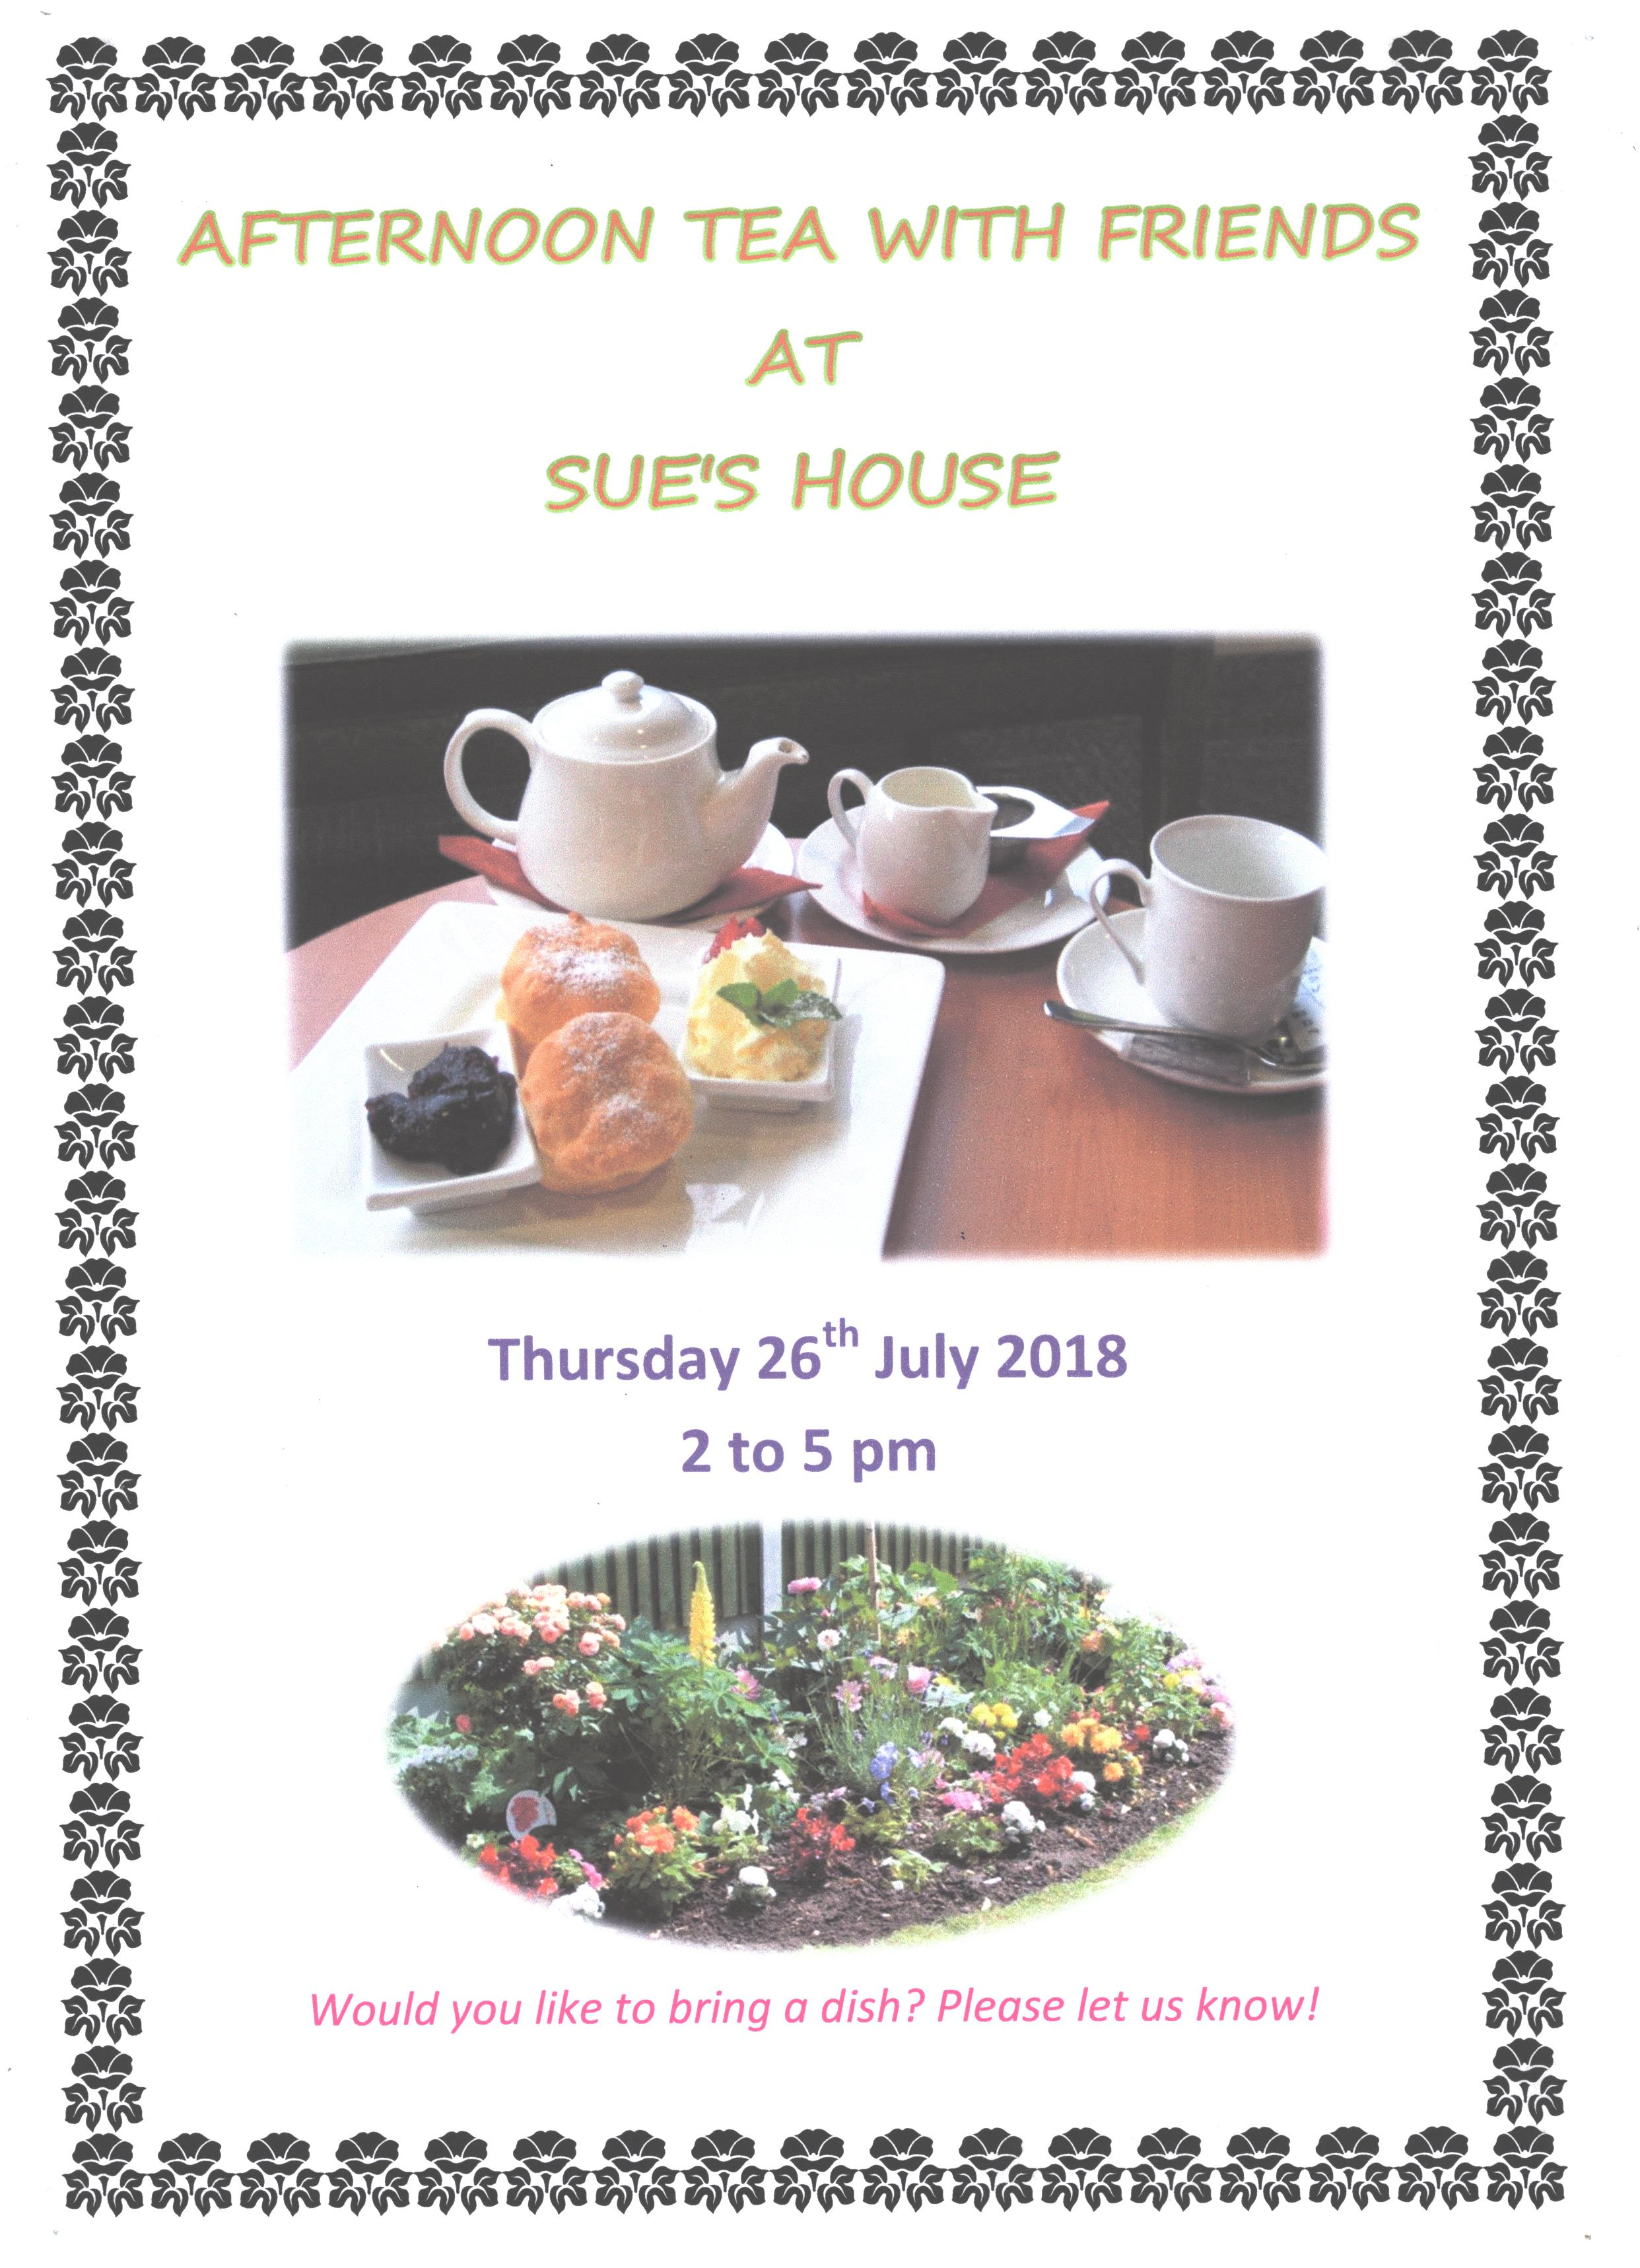 Afternoon Tea Poster 2018